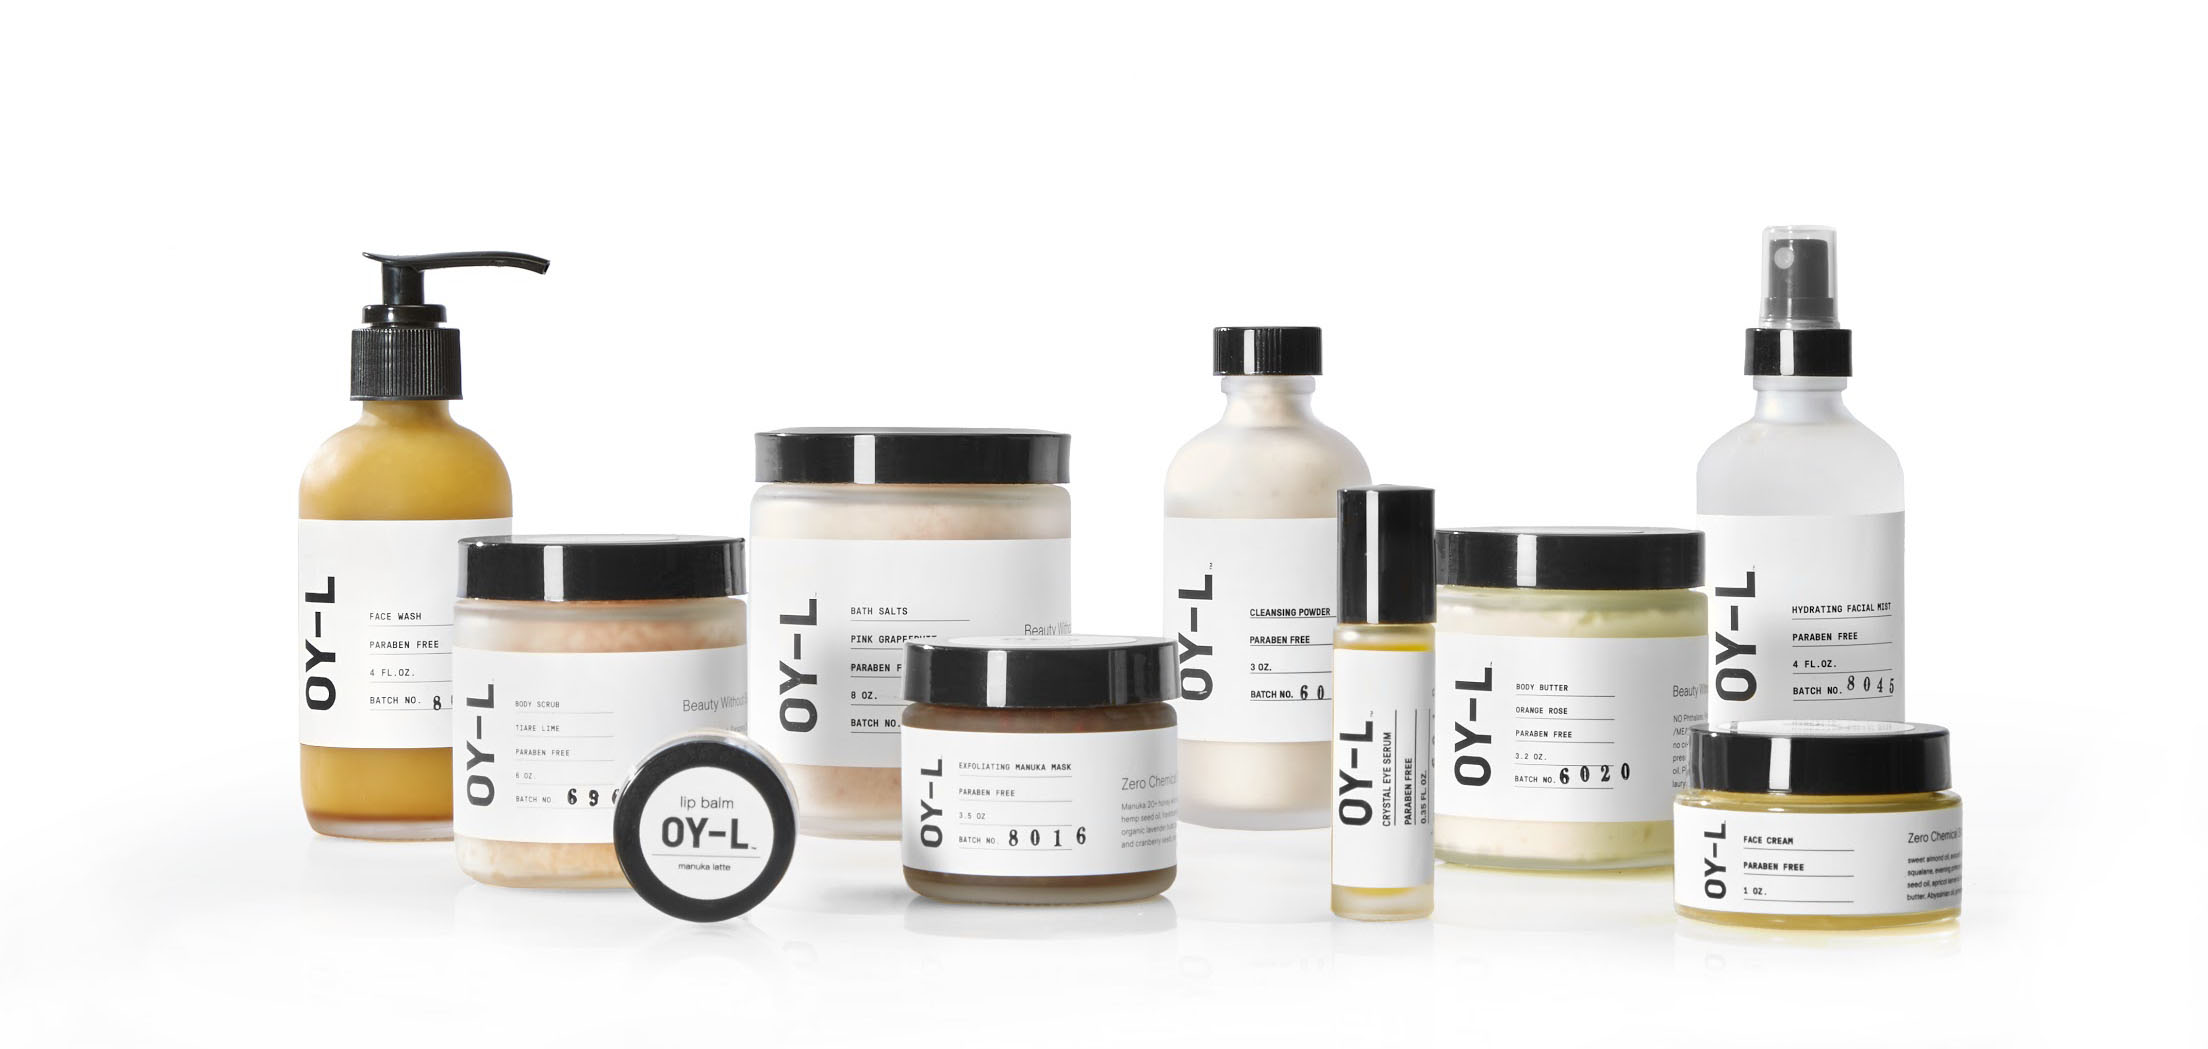 OY-L Skincare product line. Several white bottles and containers with black lids and the letters OY-L centered on the front.